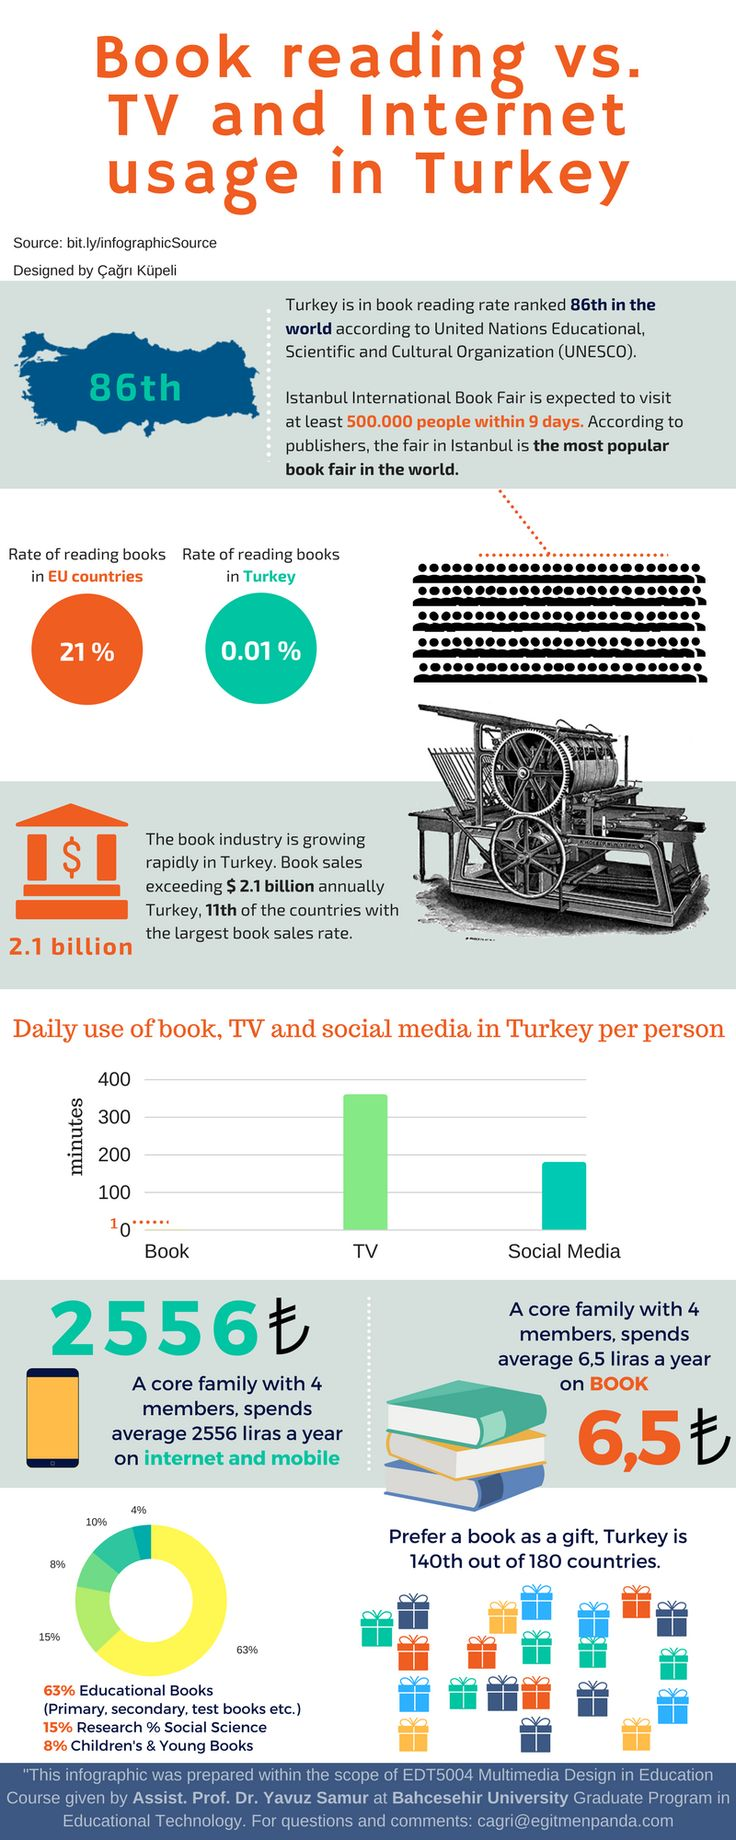 Infographic about book reading vs. TV and Internet usage in Turkey